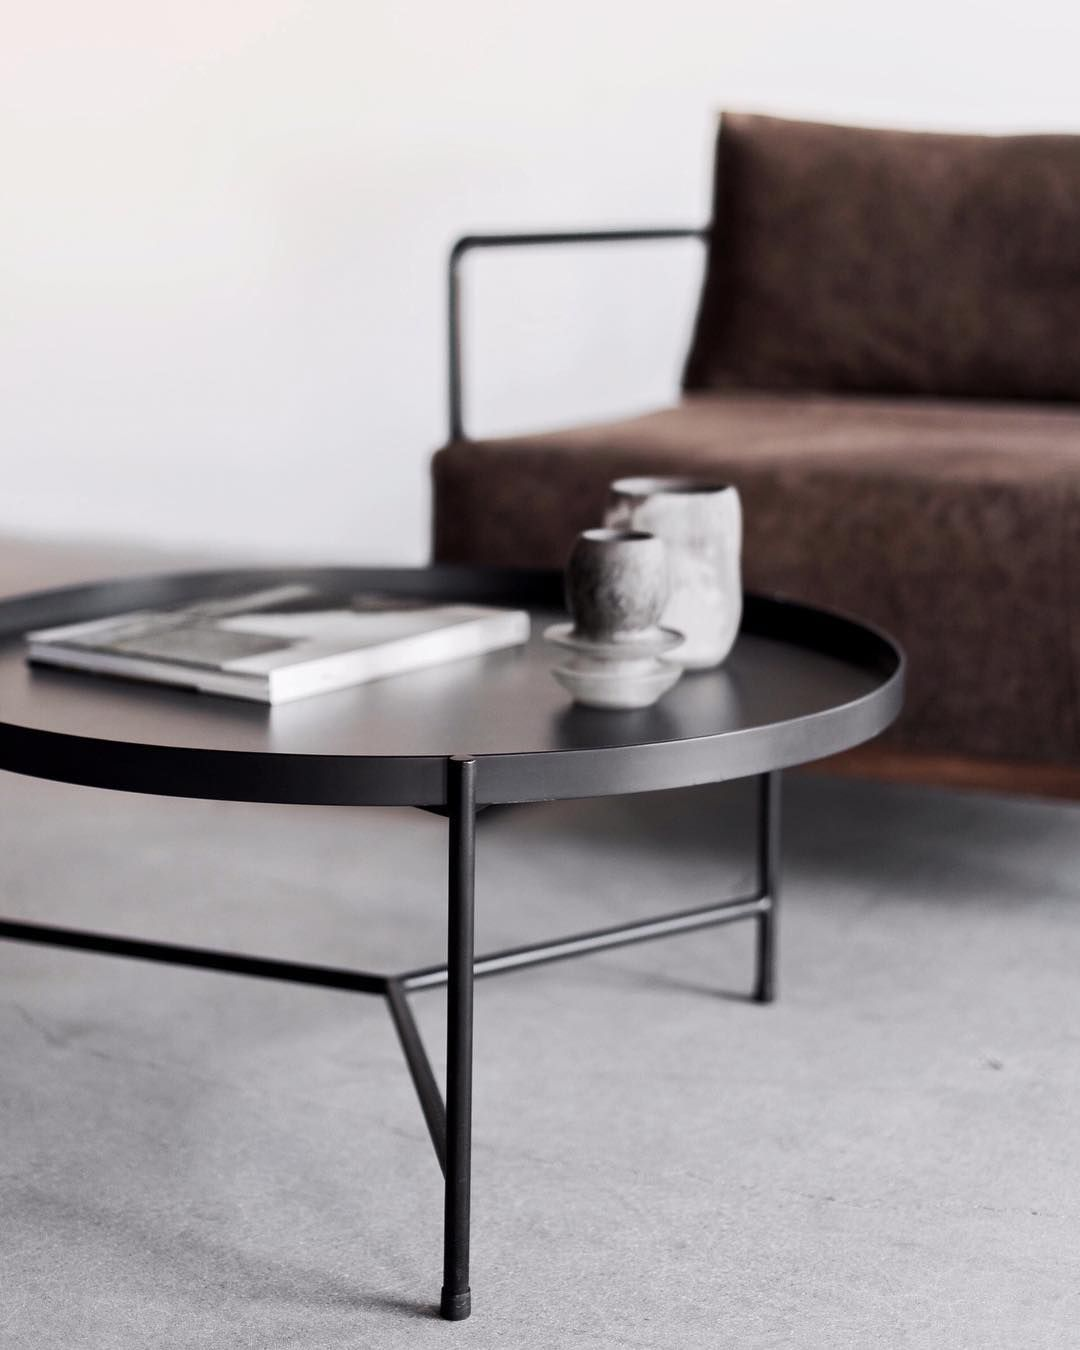 Bronson Coffee Table Paired With Our Colin Chair Coffee Table Table Furniture Design [ 1350 x 1080 Pixel ]